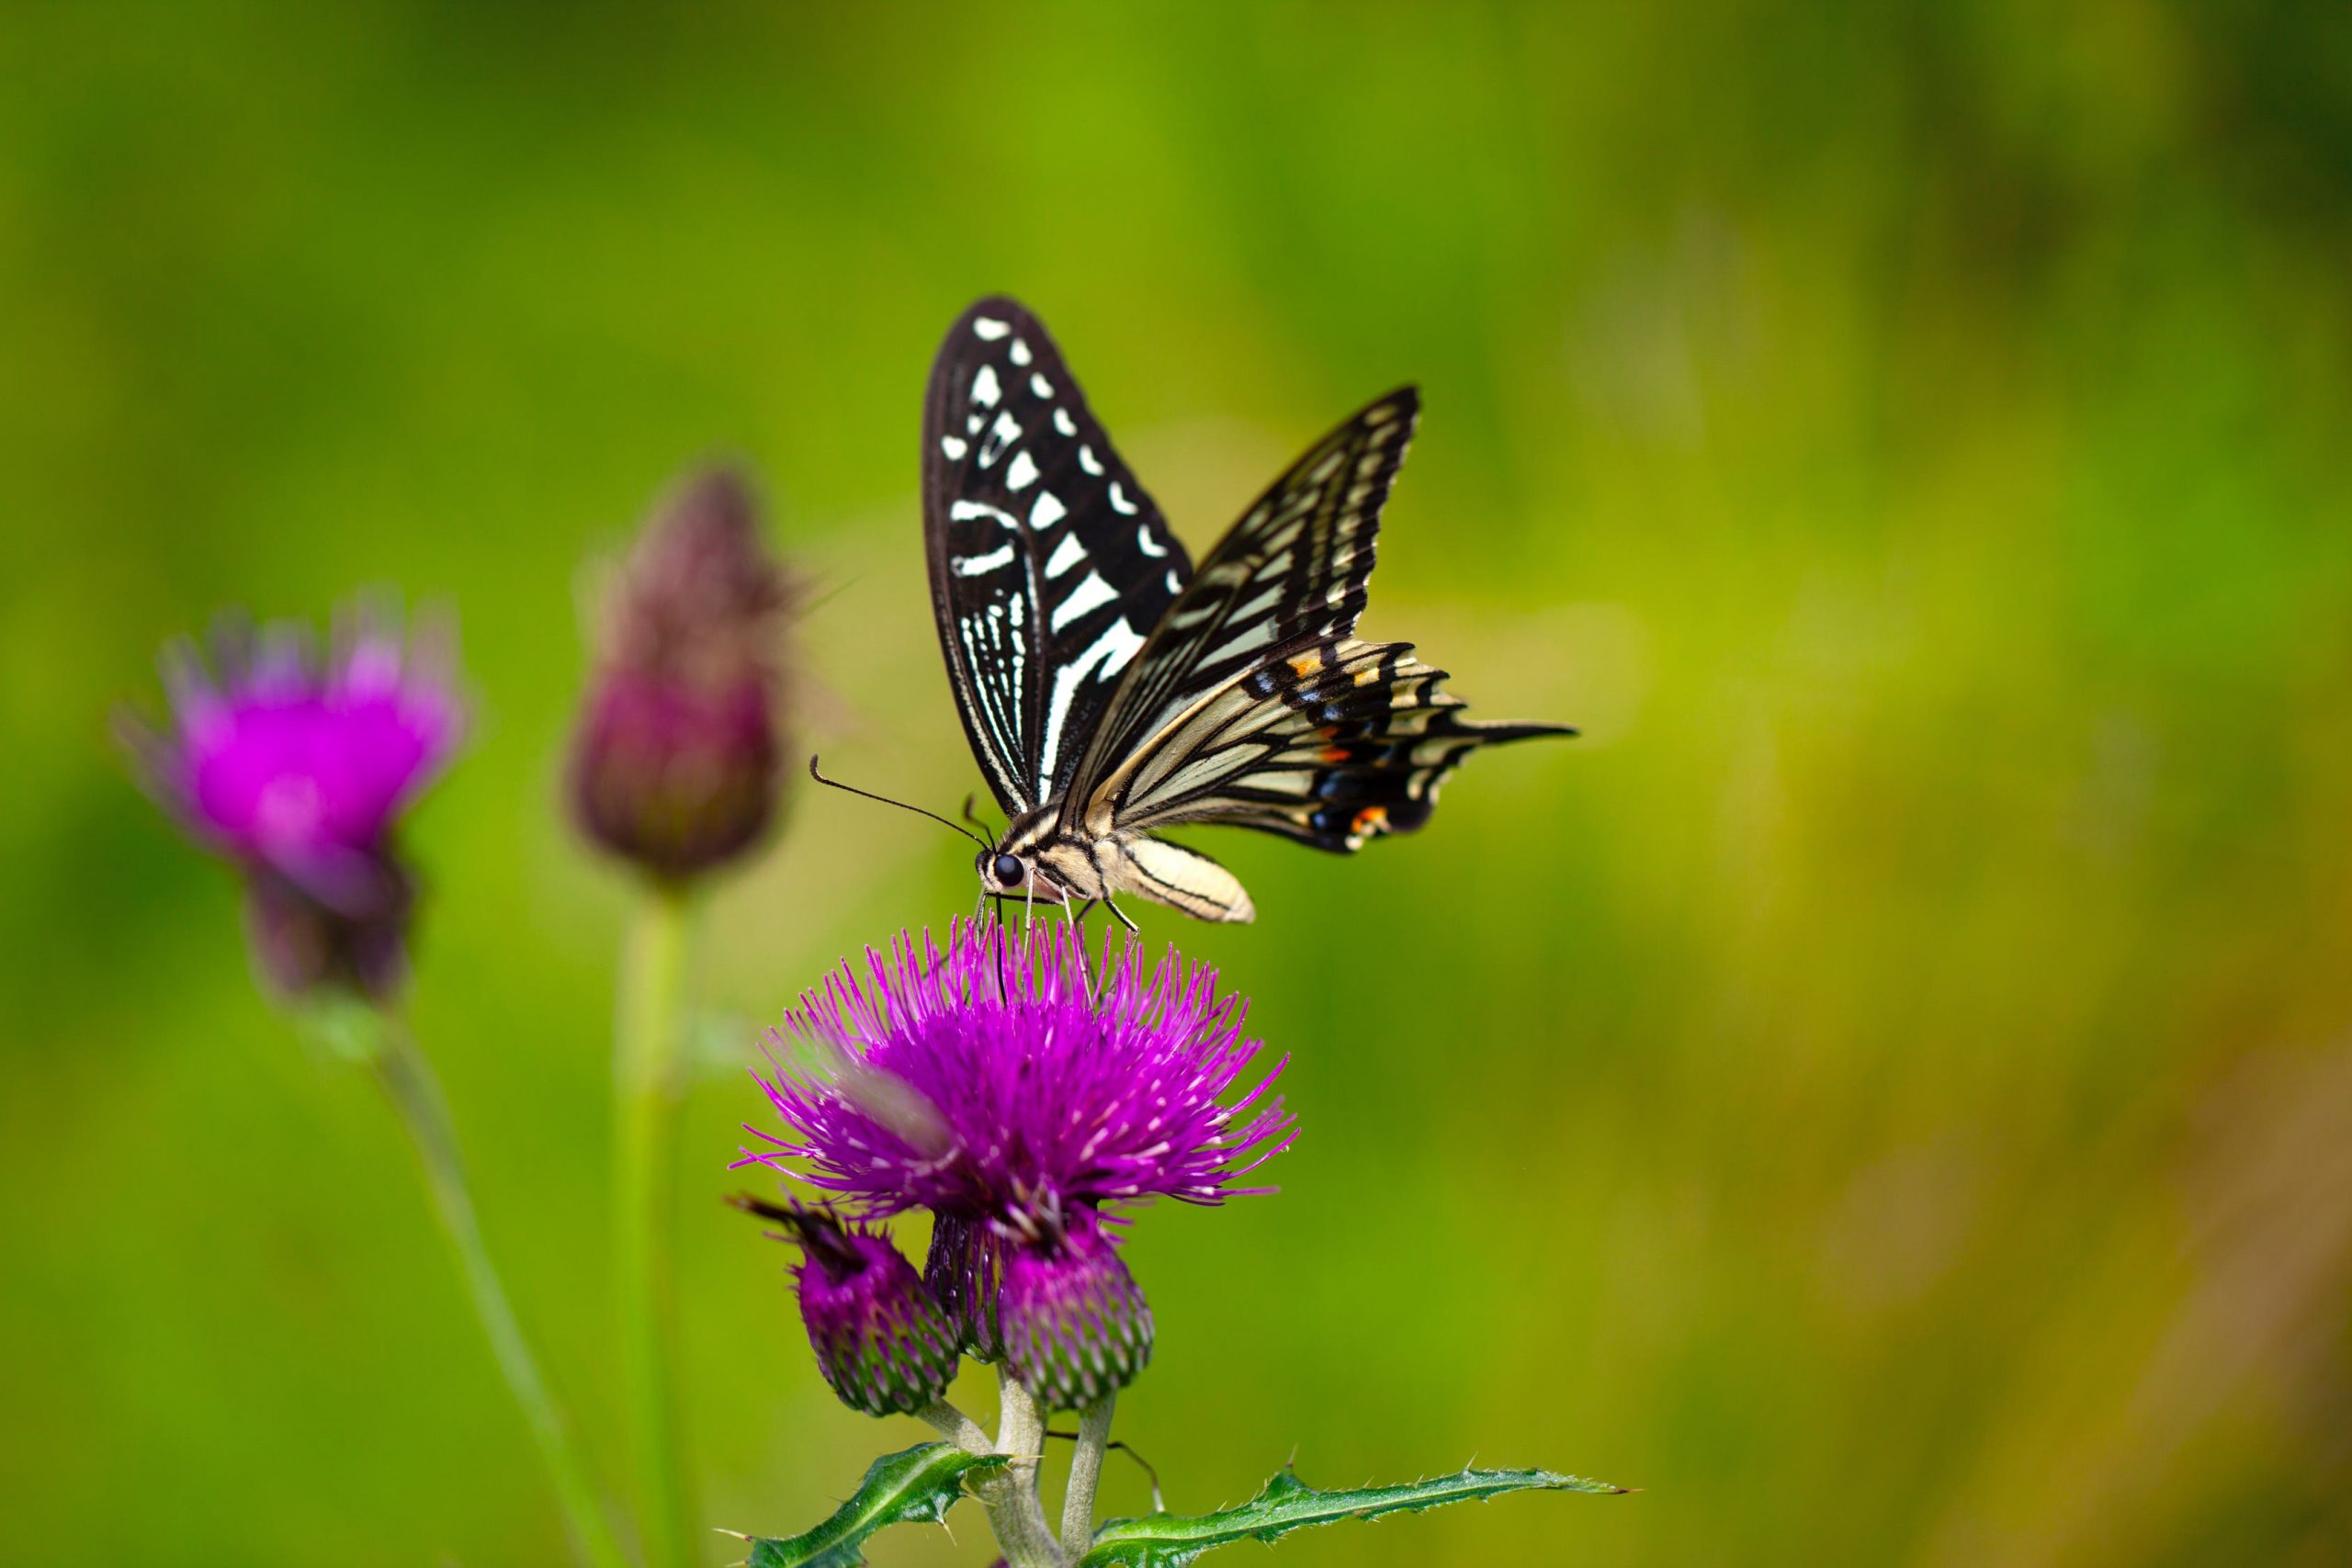 Funding Boost for Biodiversity Projects in Scotland